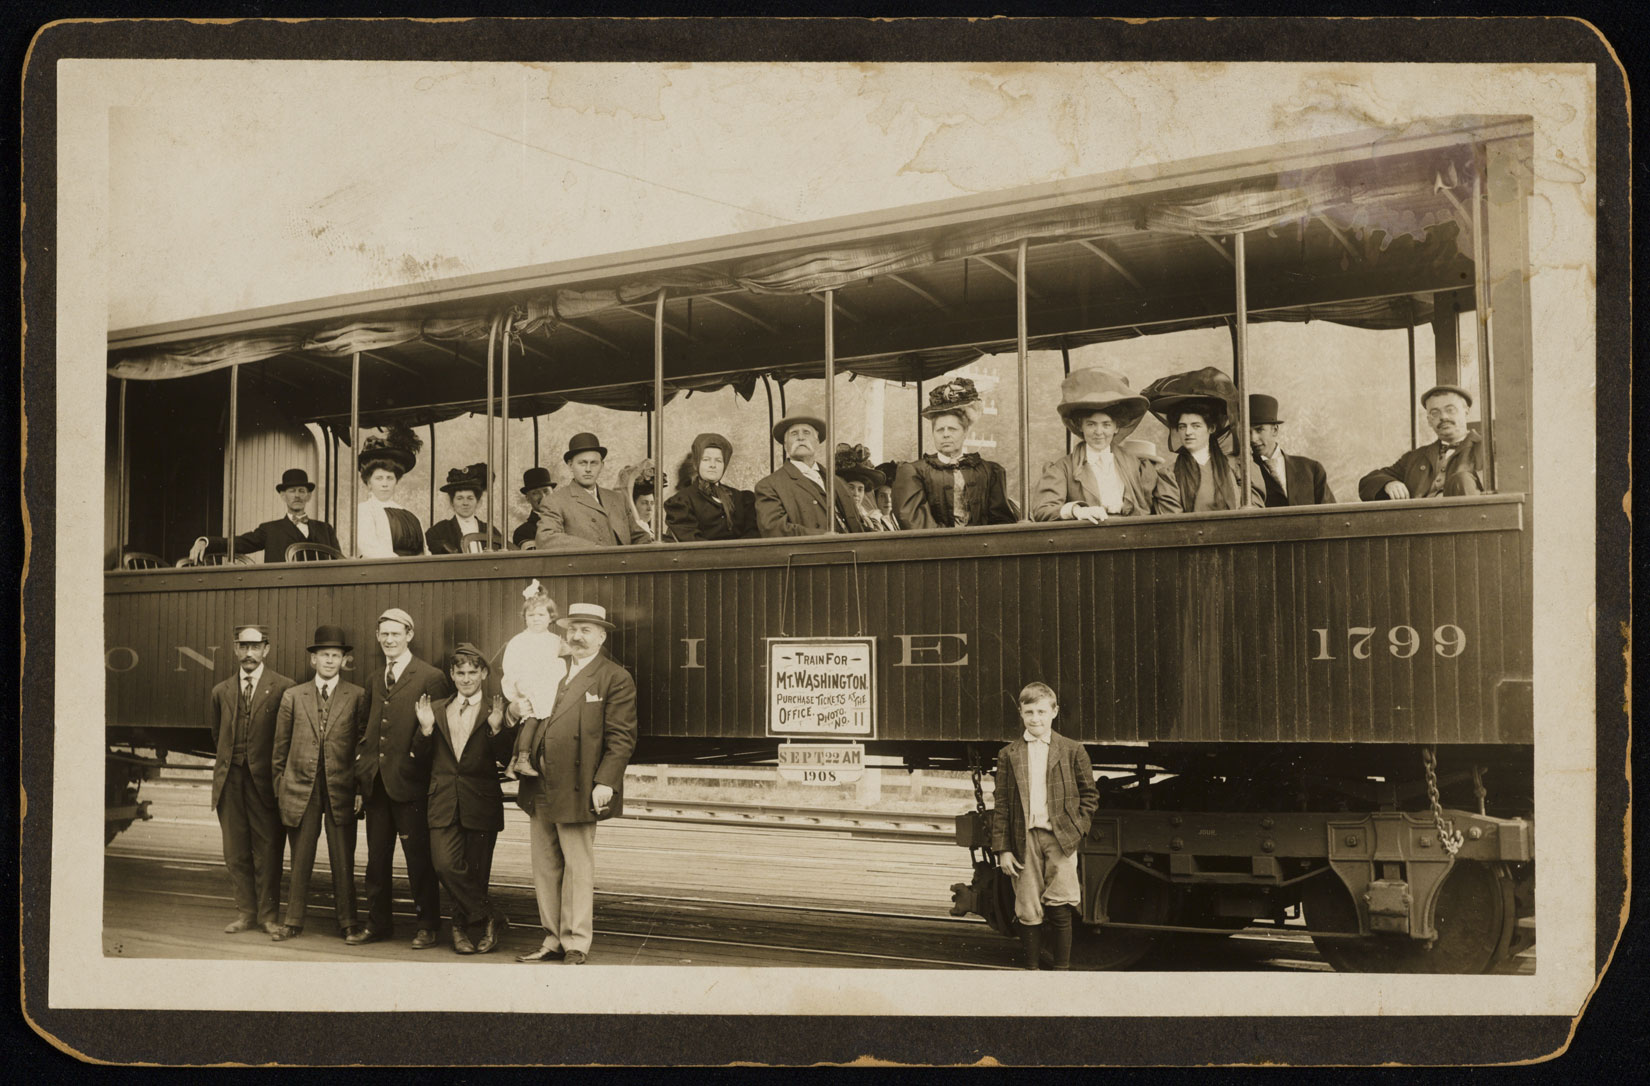 Photo of train with passengers posing next to it and passengers seated inside